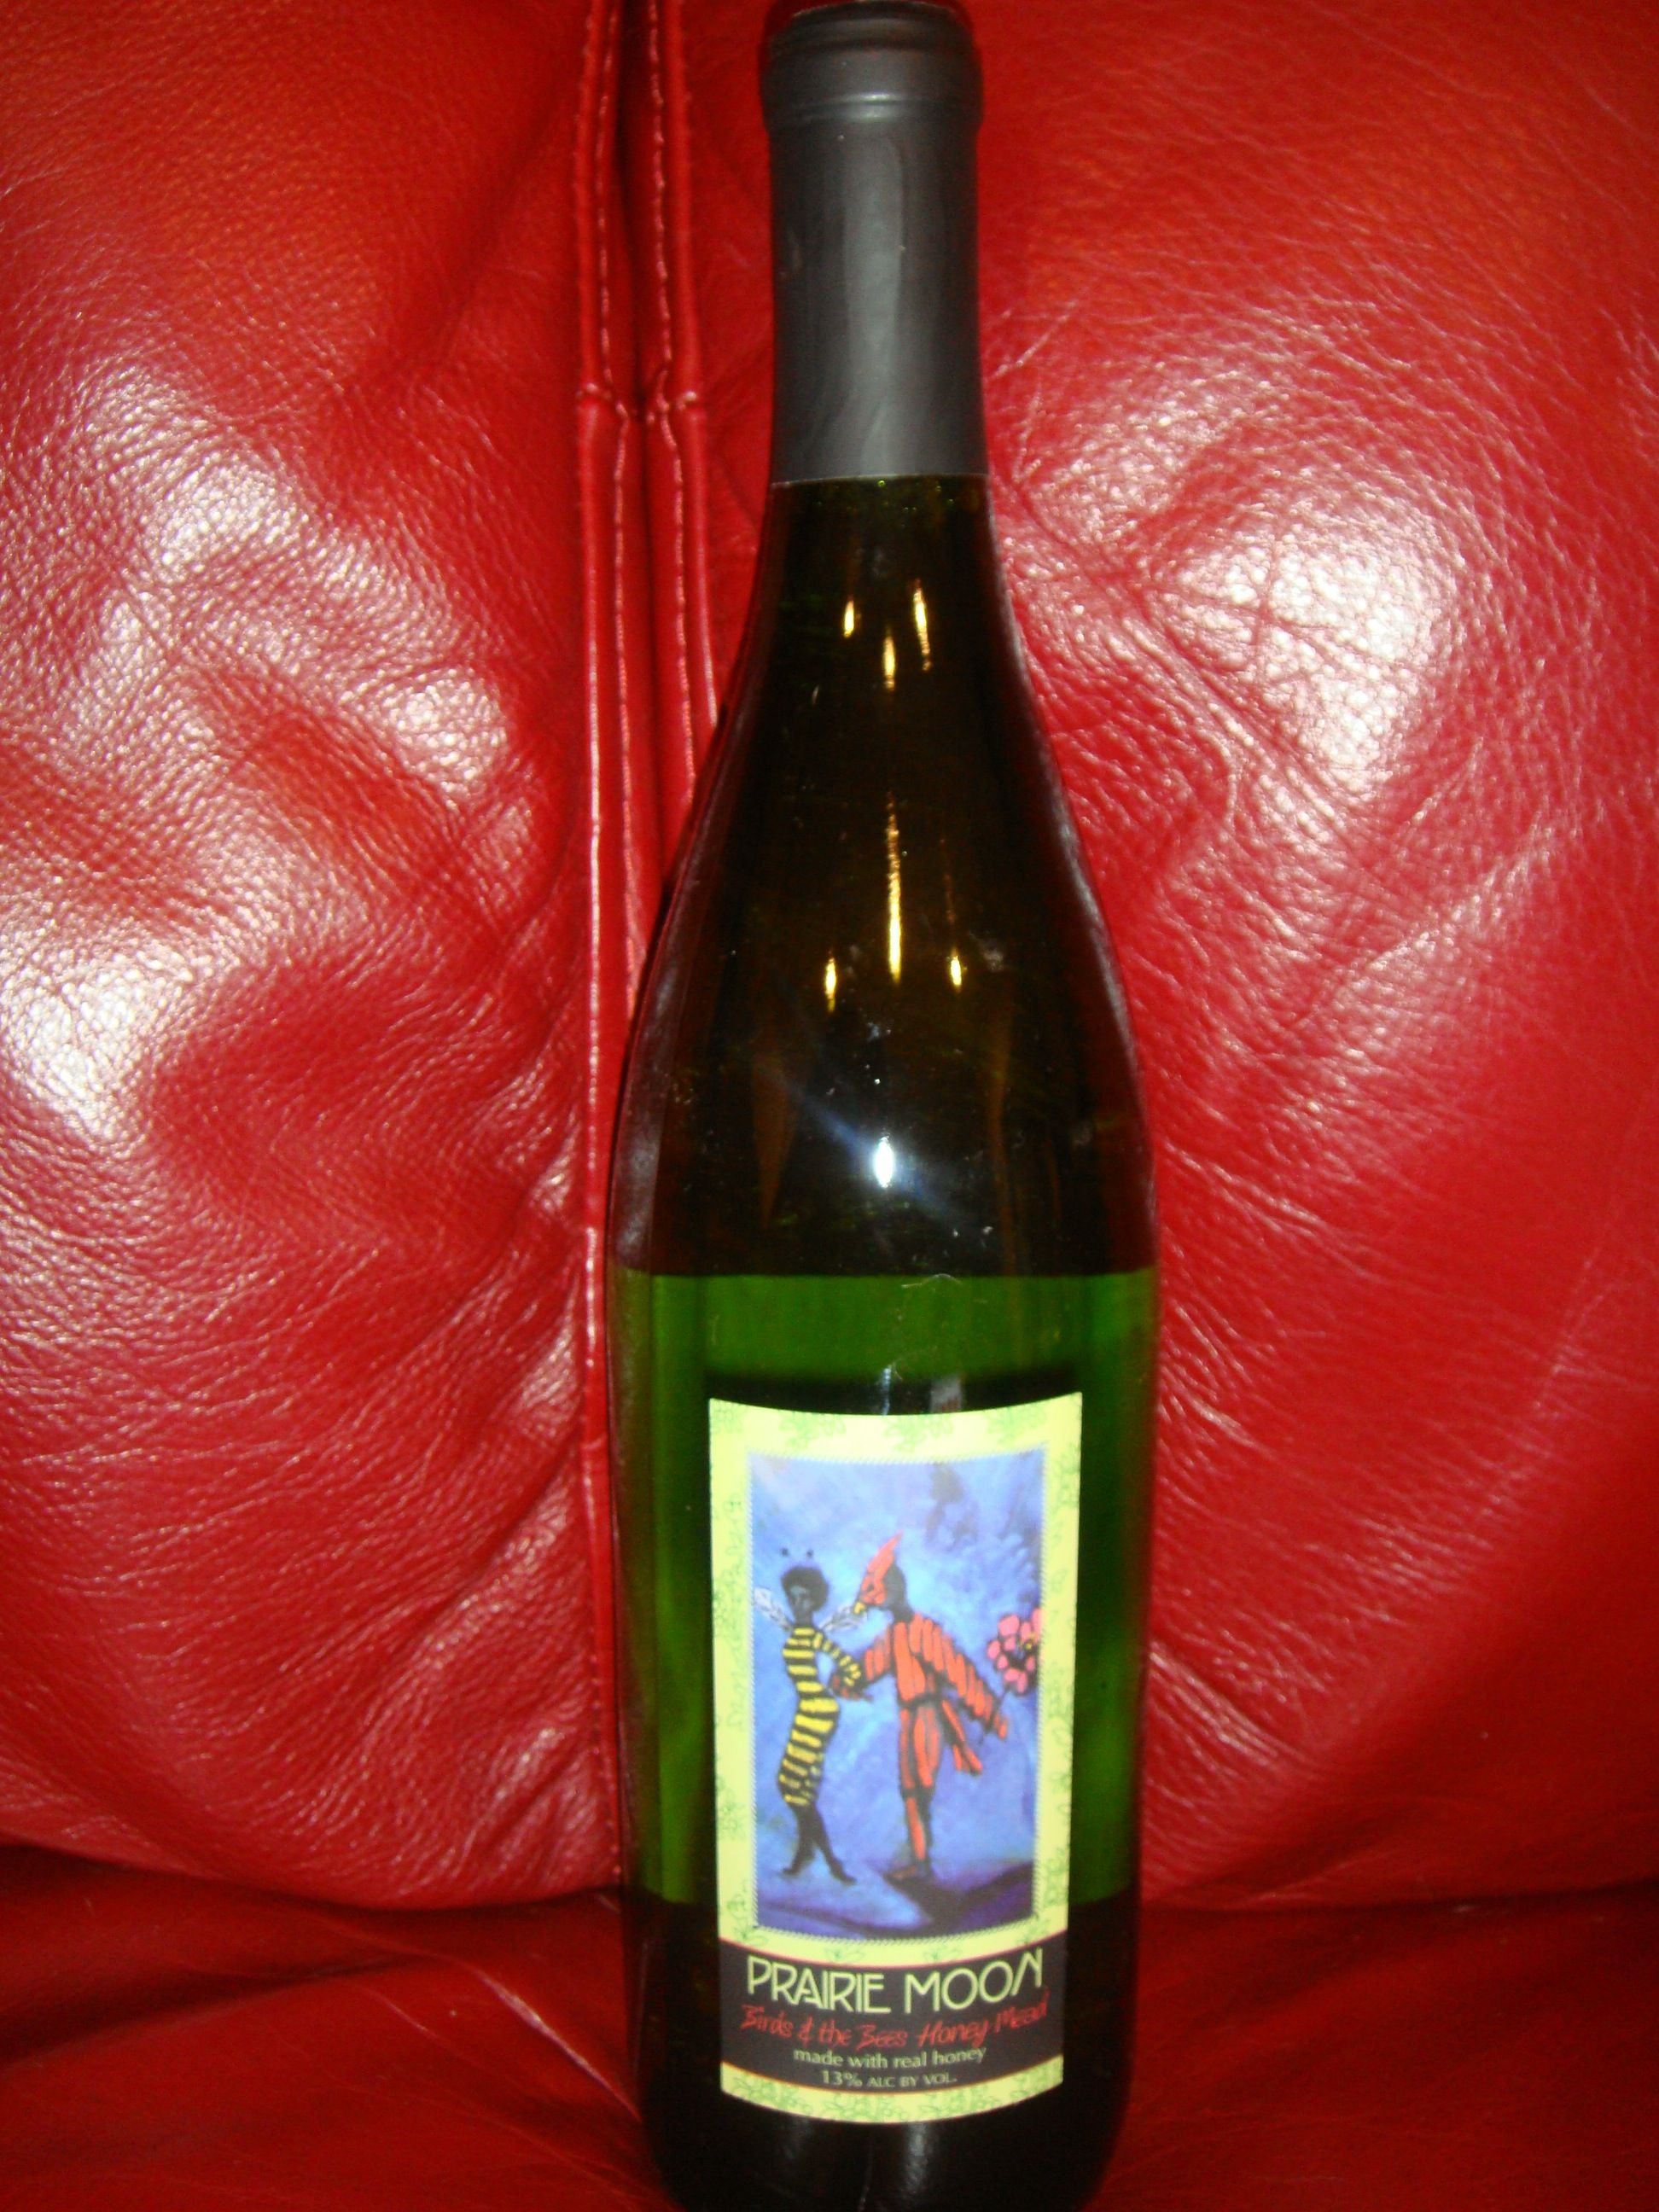 Birds The Bees Honey Mead By Prairie Moon Winery Wine Bottle Winery Distillery